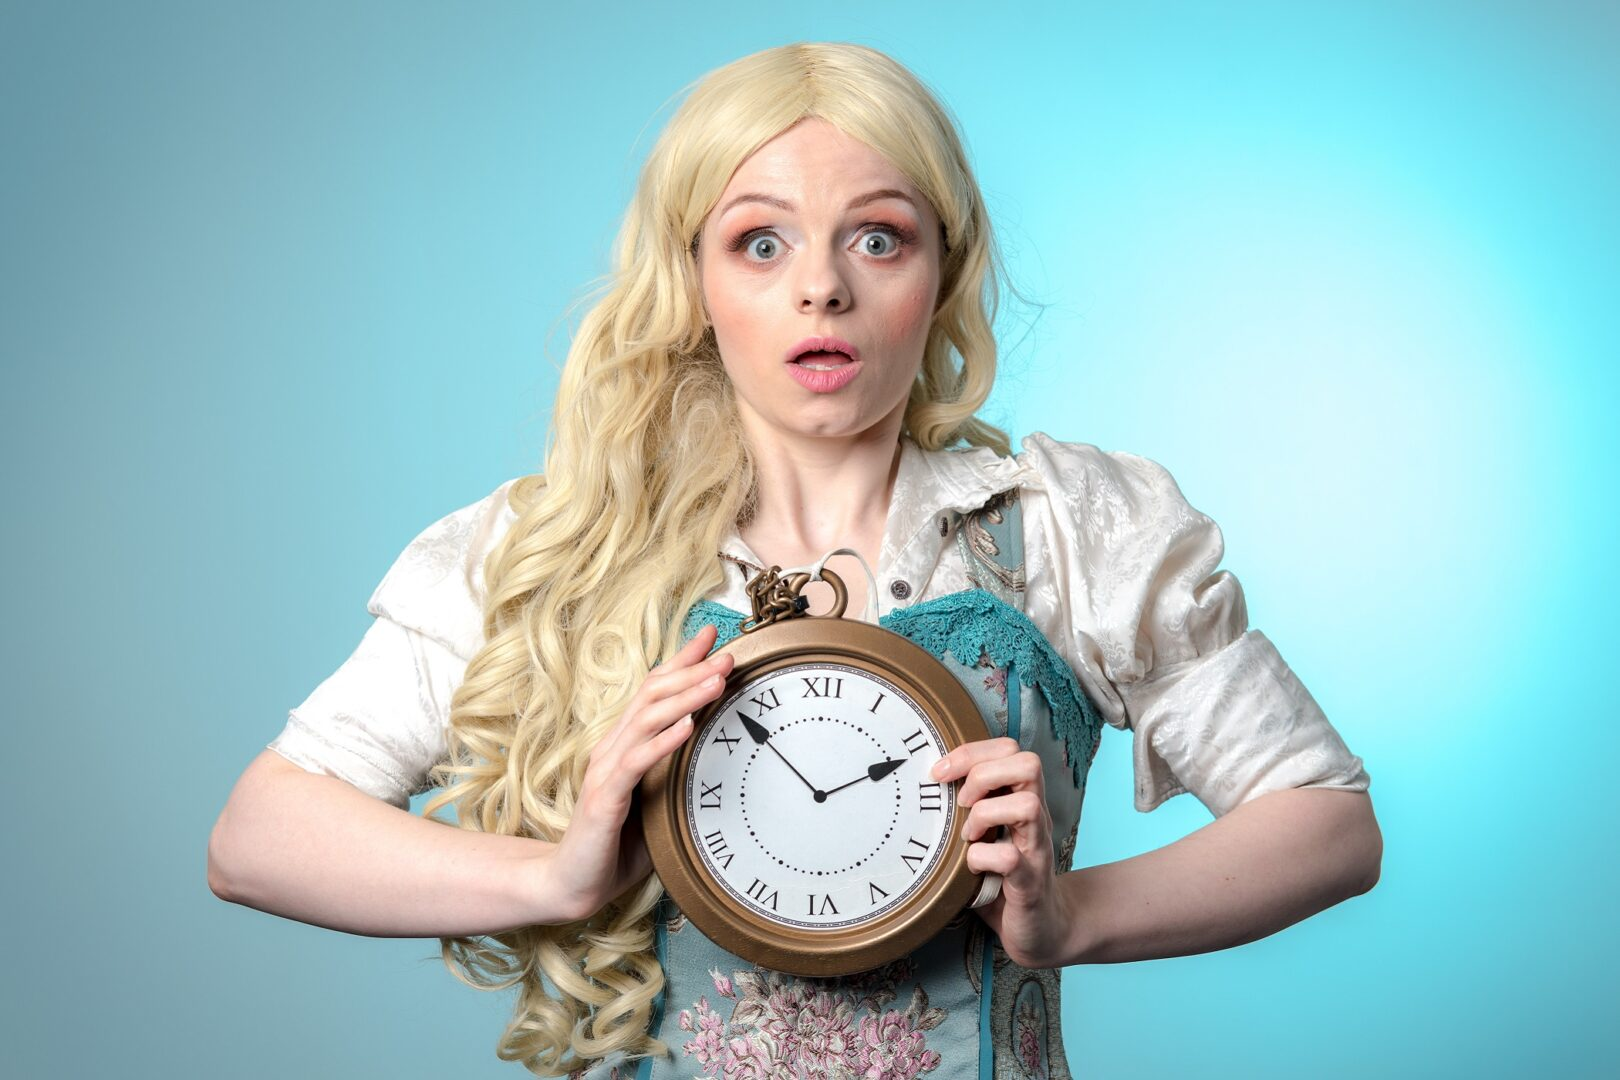 The title character of Alice in Wonderland, Alice, clutches a clock with a shocked expression